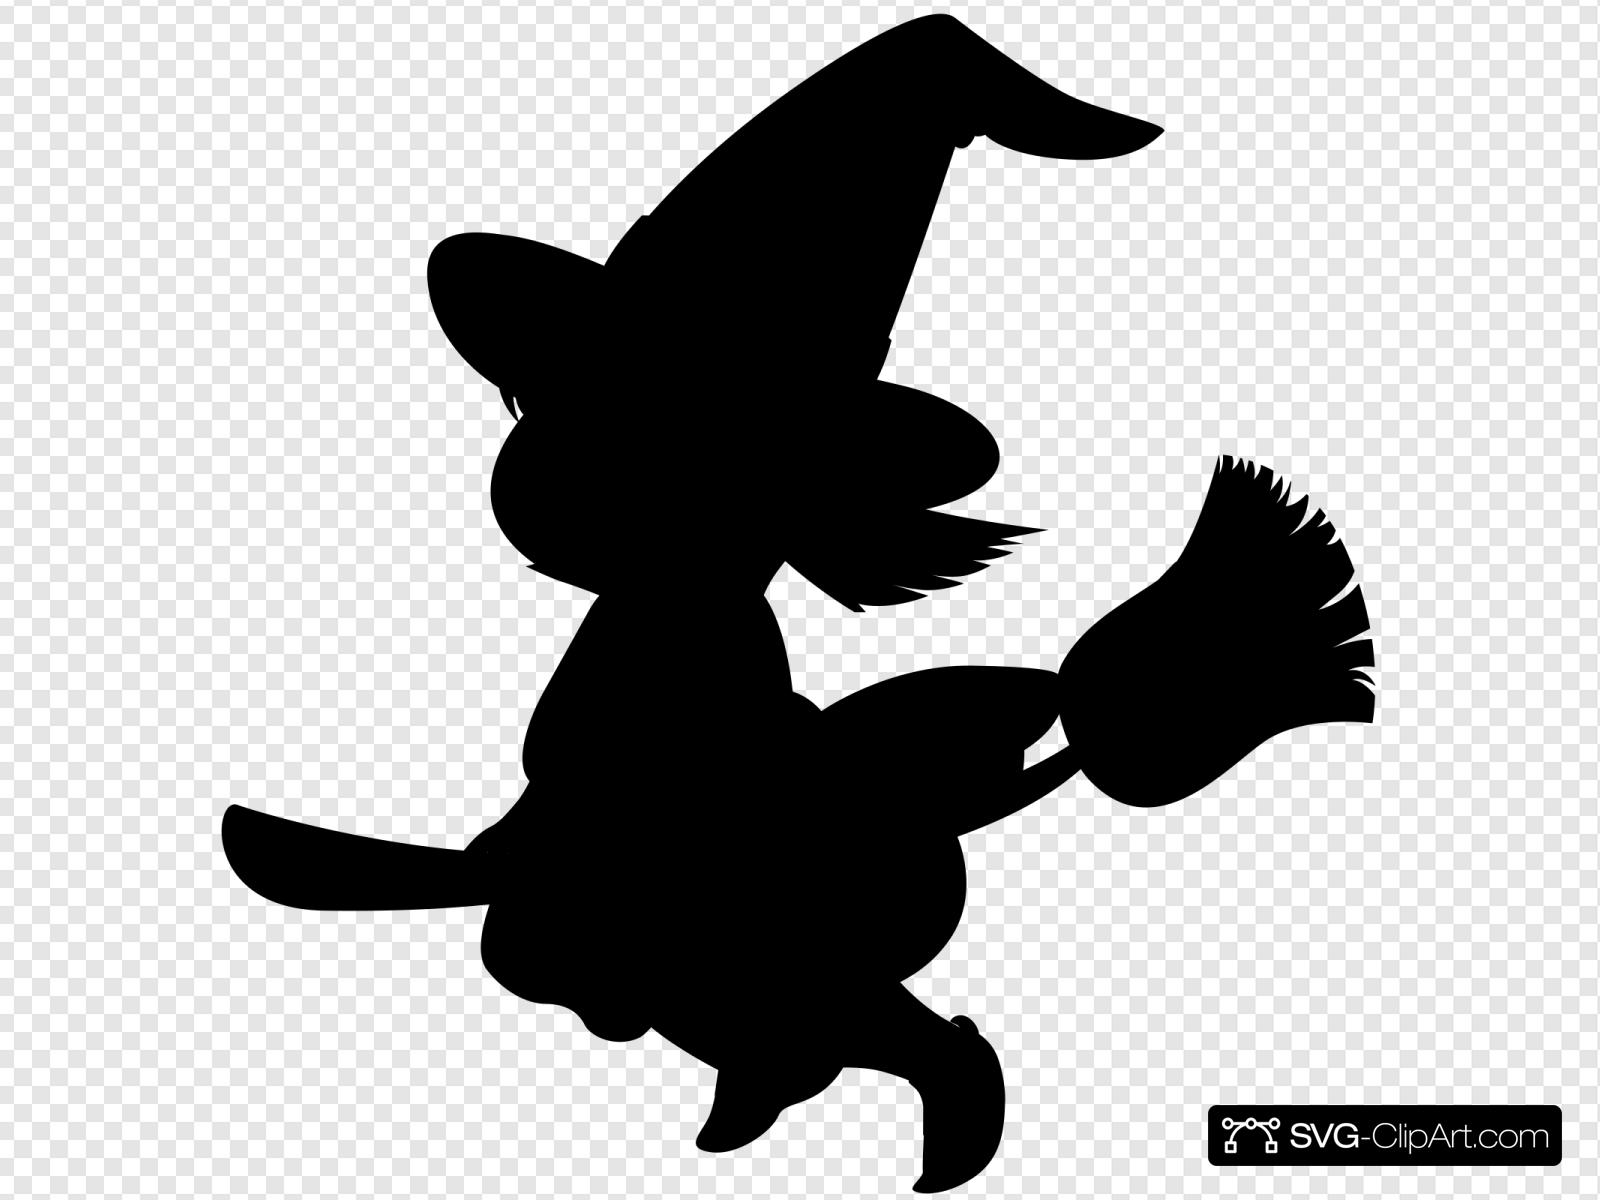 Witch Silhouette Svg Vector Witch Silhouette Clip Art Svg Clipart